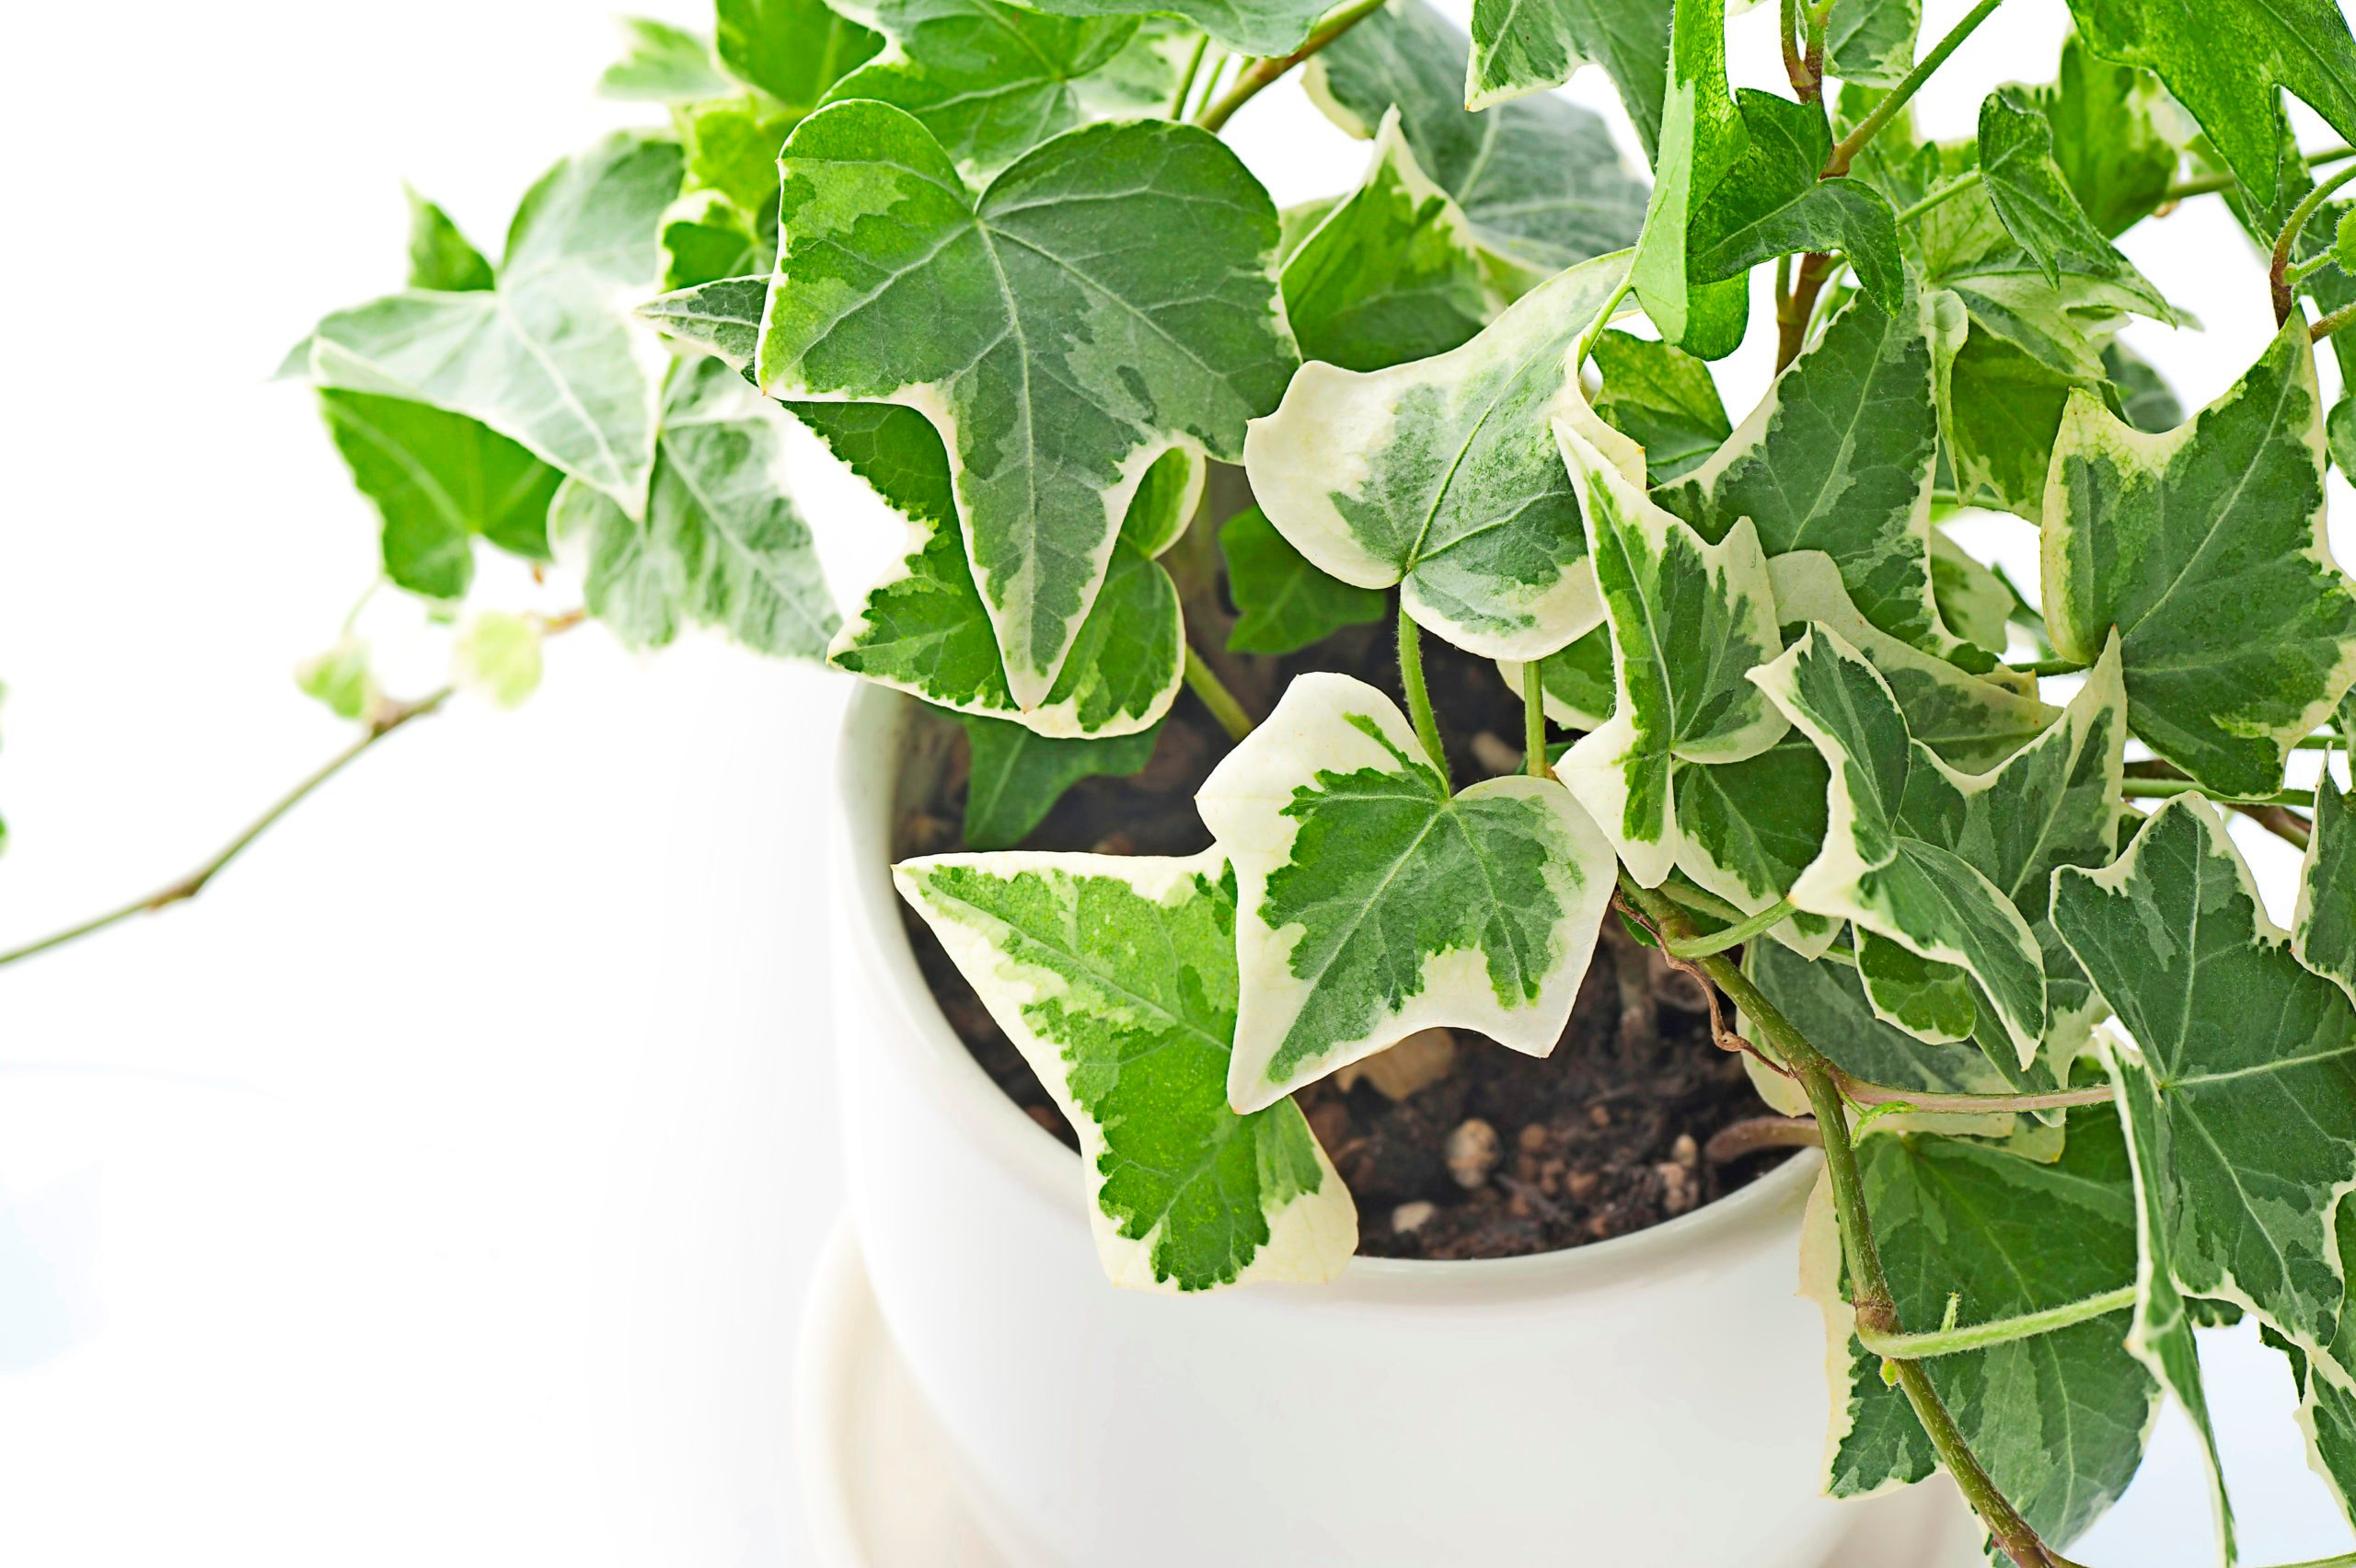 English ivy in a white pot.